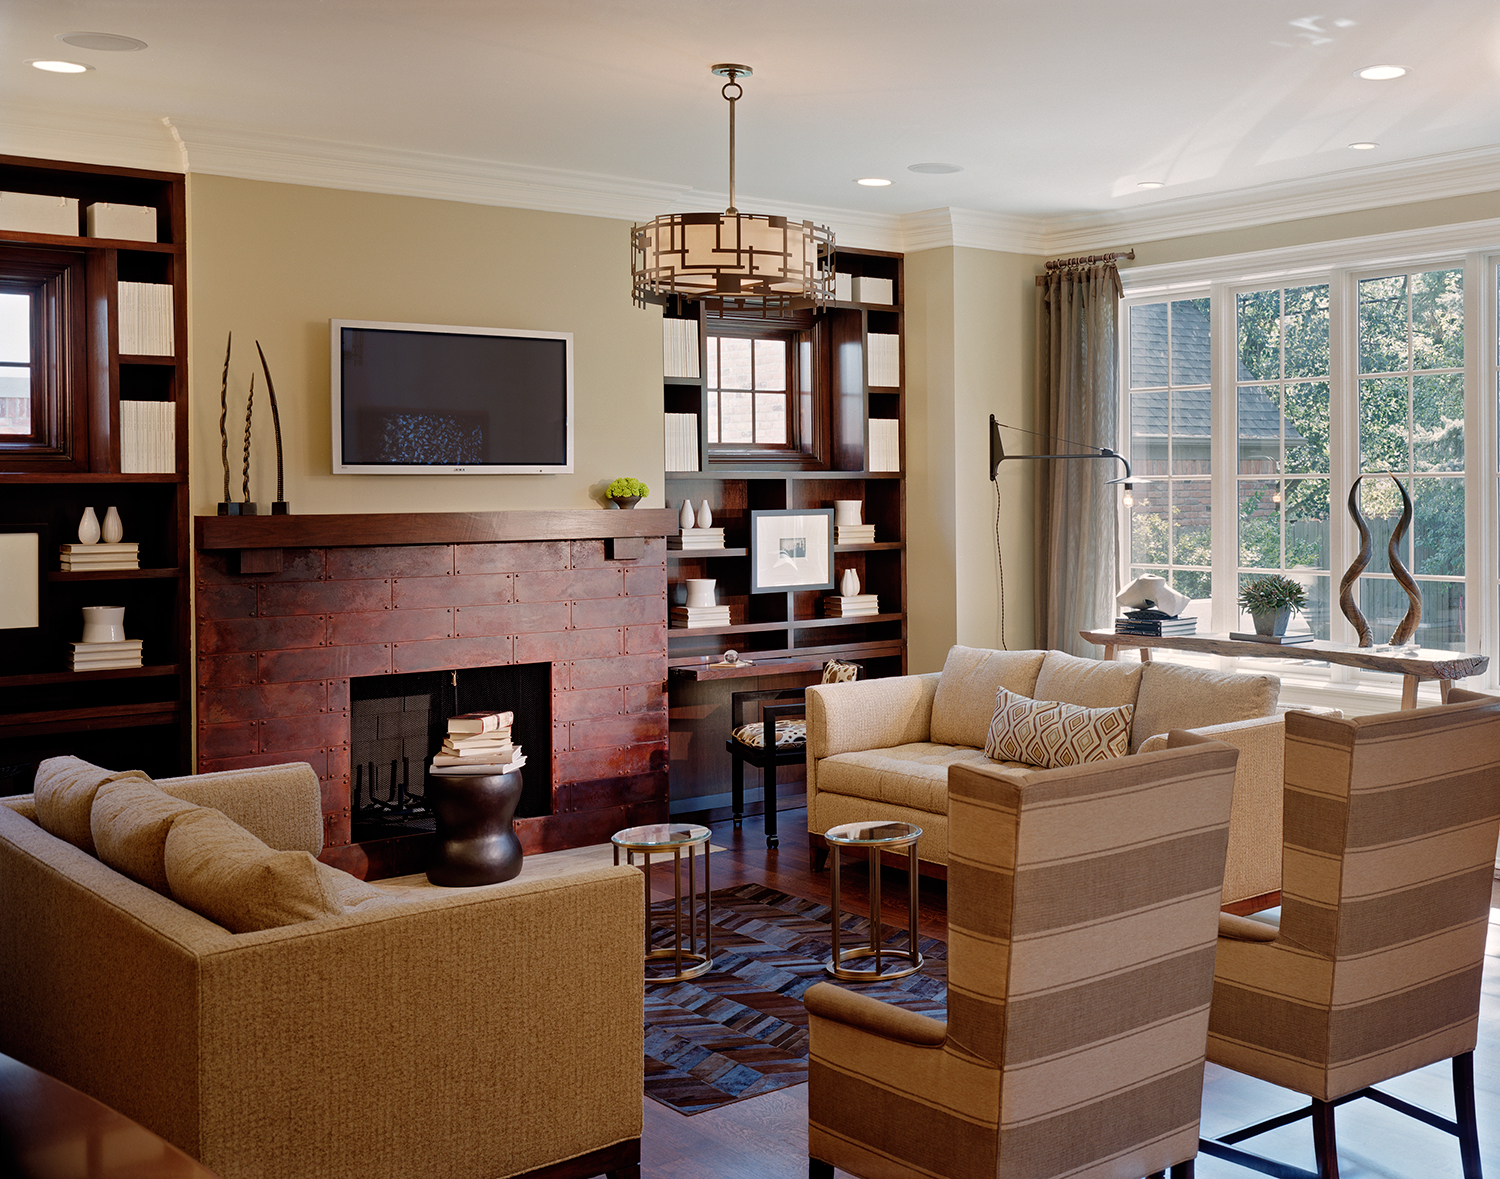 We designed the Birmingham Showhouse family room to include the characteristics of the Arts and Crafts style through the use of organic materials, with a hand-made quality. There is also slight Japanese aesthetic running through the design. It was designed to be a warm, comfortable place for the entire family to spend time in. For example, we designed the bookcases with integral, pull-out desks, allowing the room to serve many functions. The color palate is warm neutrals, with interest being added by using many textures and punches of geometric pattern. Of note, is the fireplace surround clad in patinated steel plate with rivets, the custom cow-hide herringbone rug, the drapery hardware made from copper plumbing pipe, and the antique Thai teak log trestle table. The custom ceiling light anchors the space, while the wall light swings to the desk area as needed. Photo by Justin Maconochie.